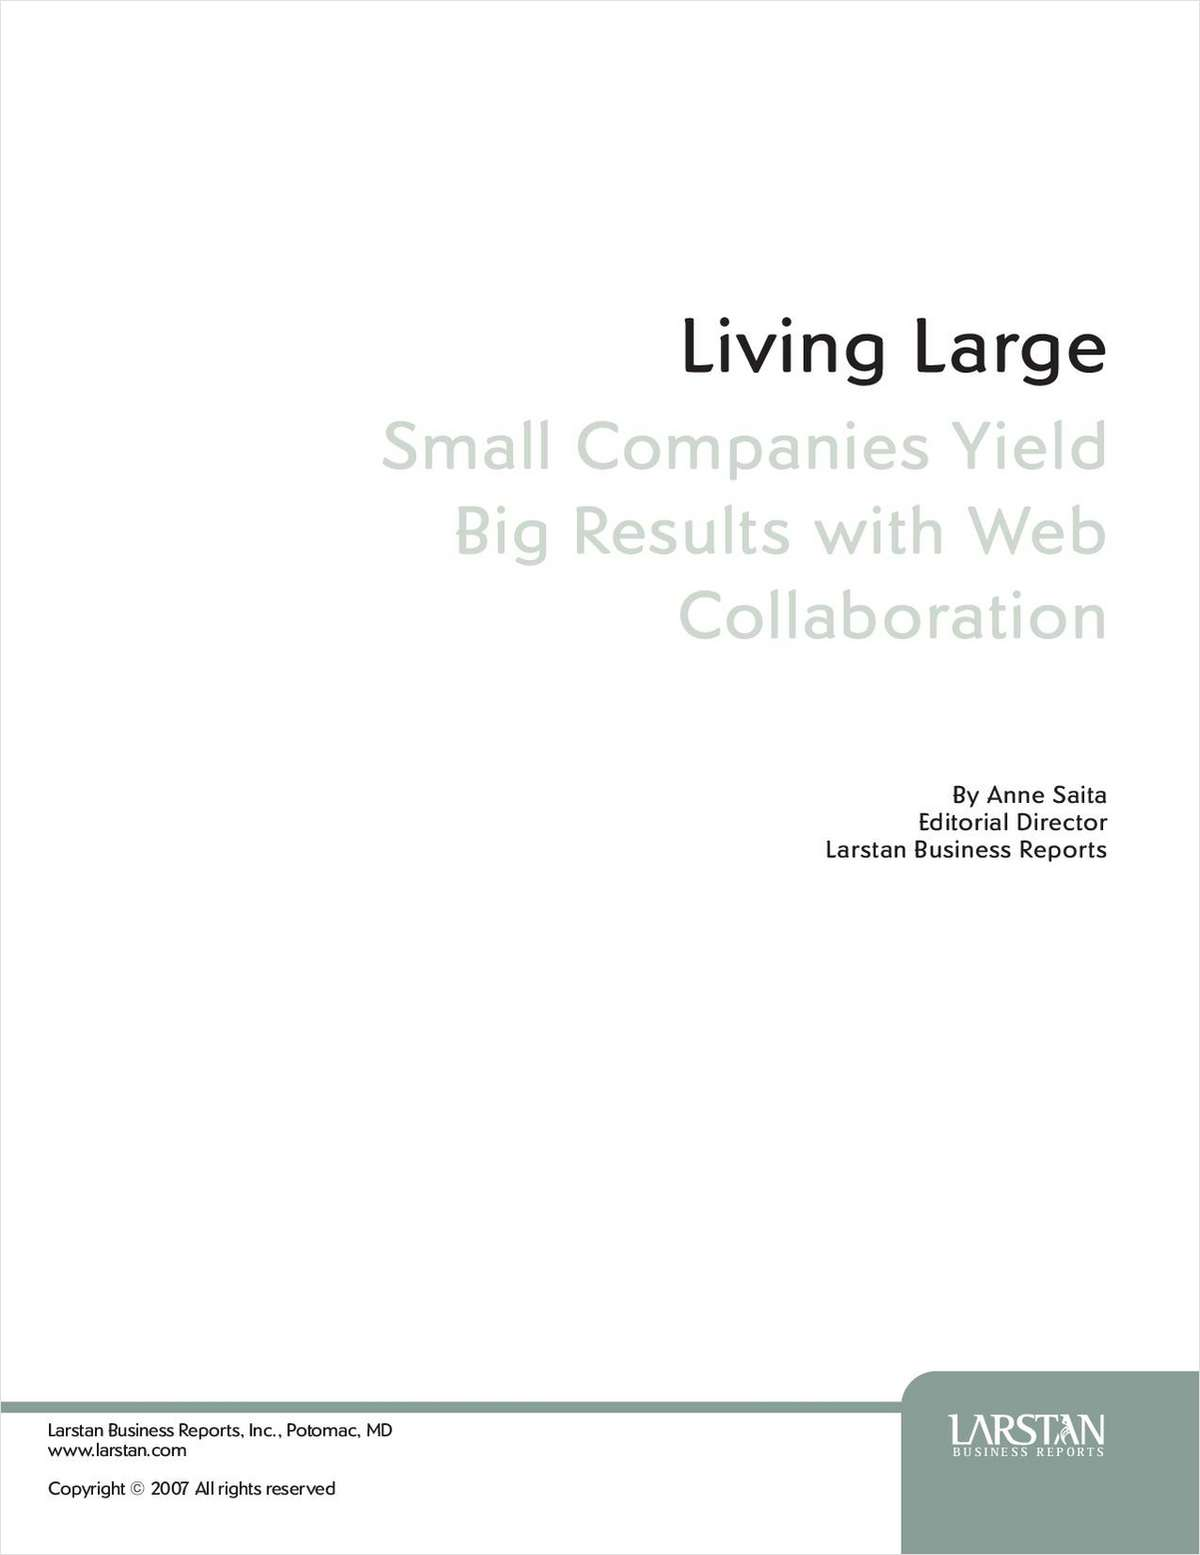 Living Large: Small Companies Yield Big Results with Web Collaboration